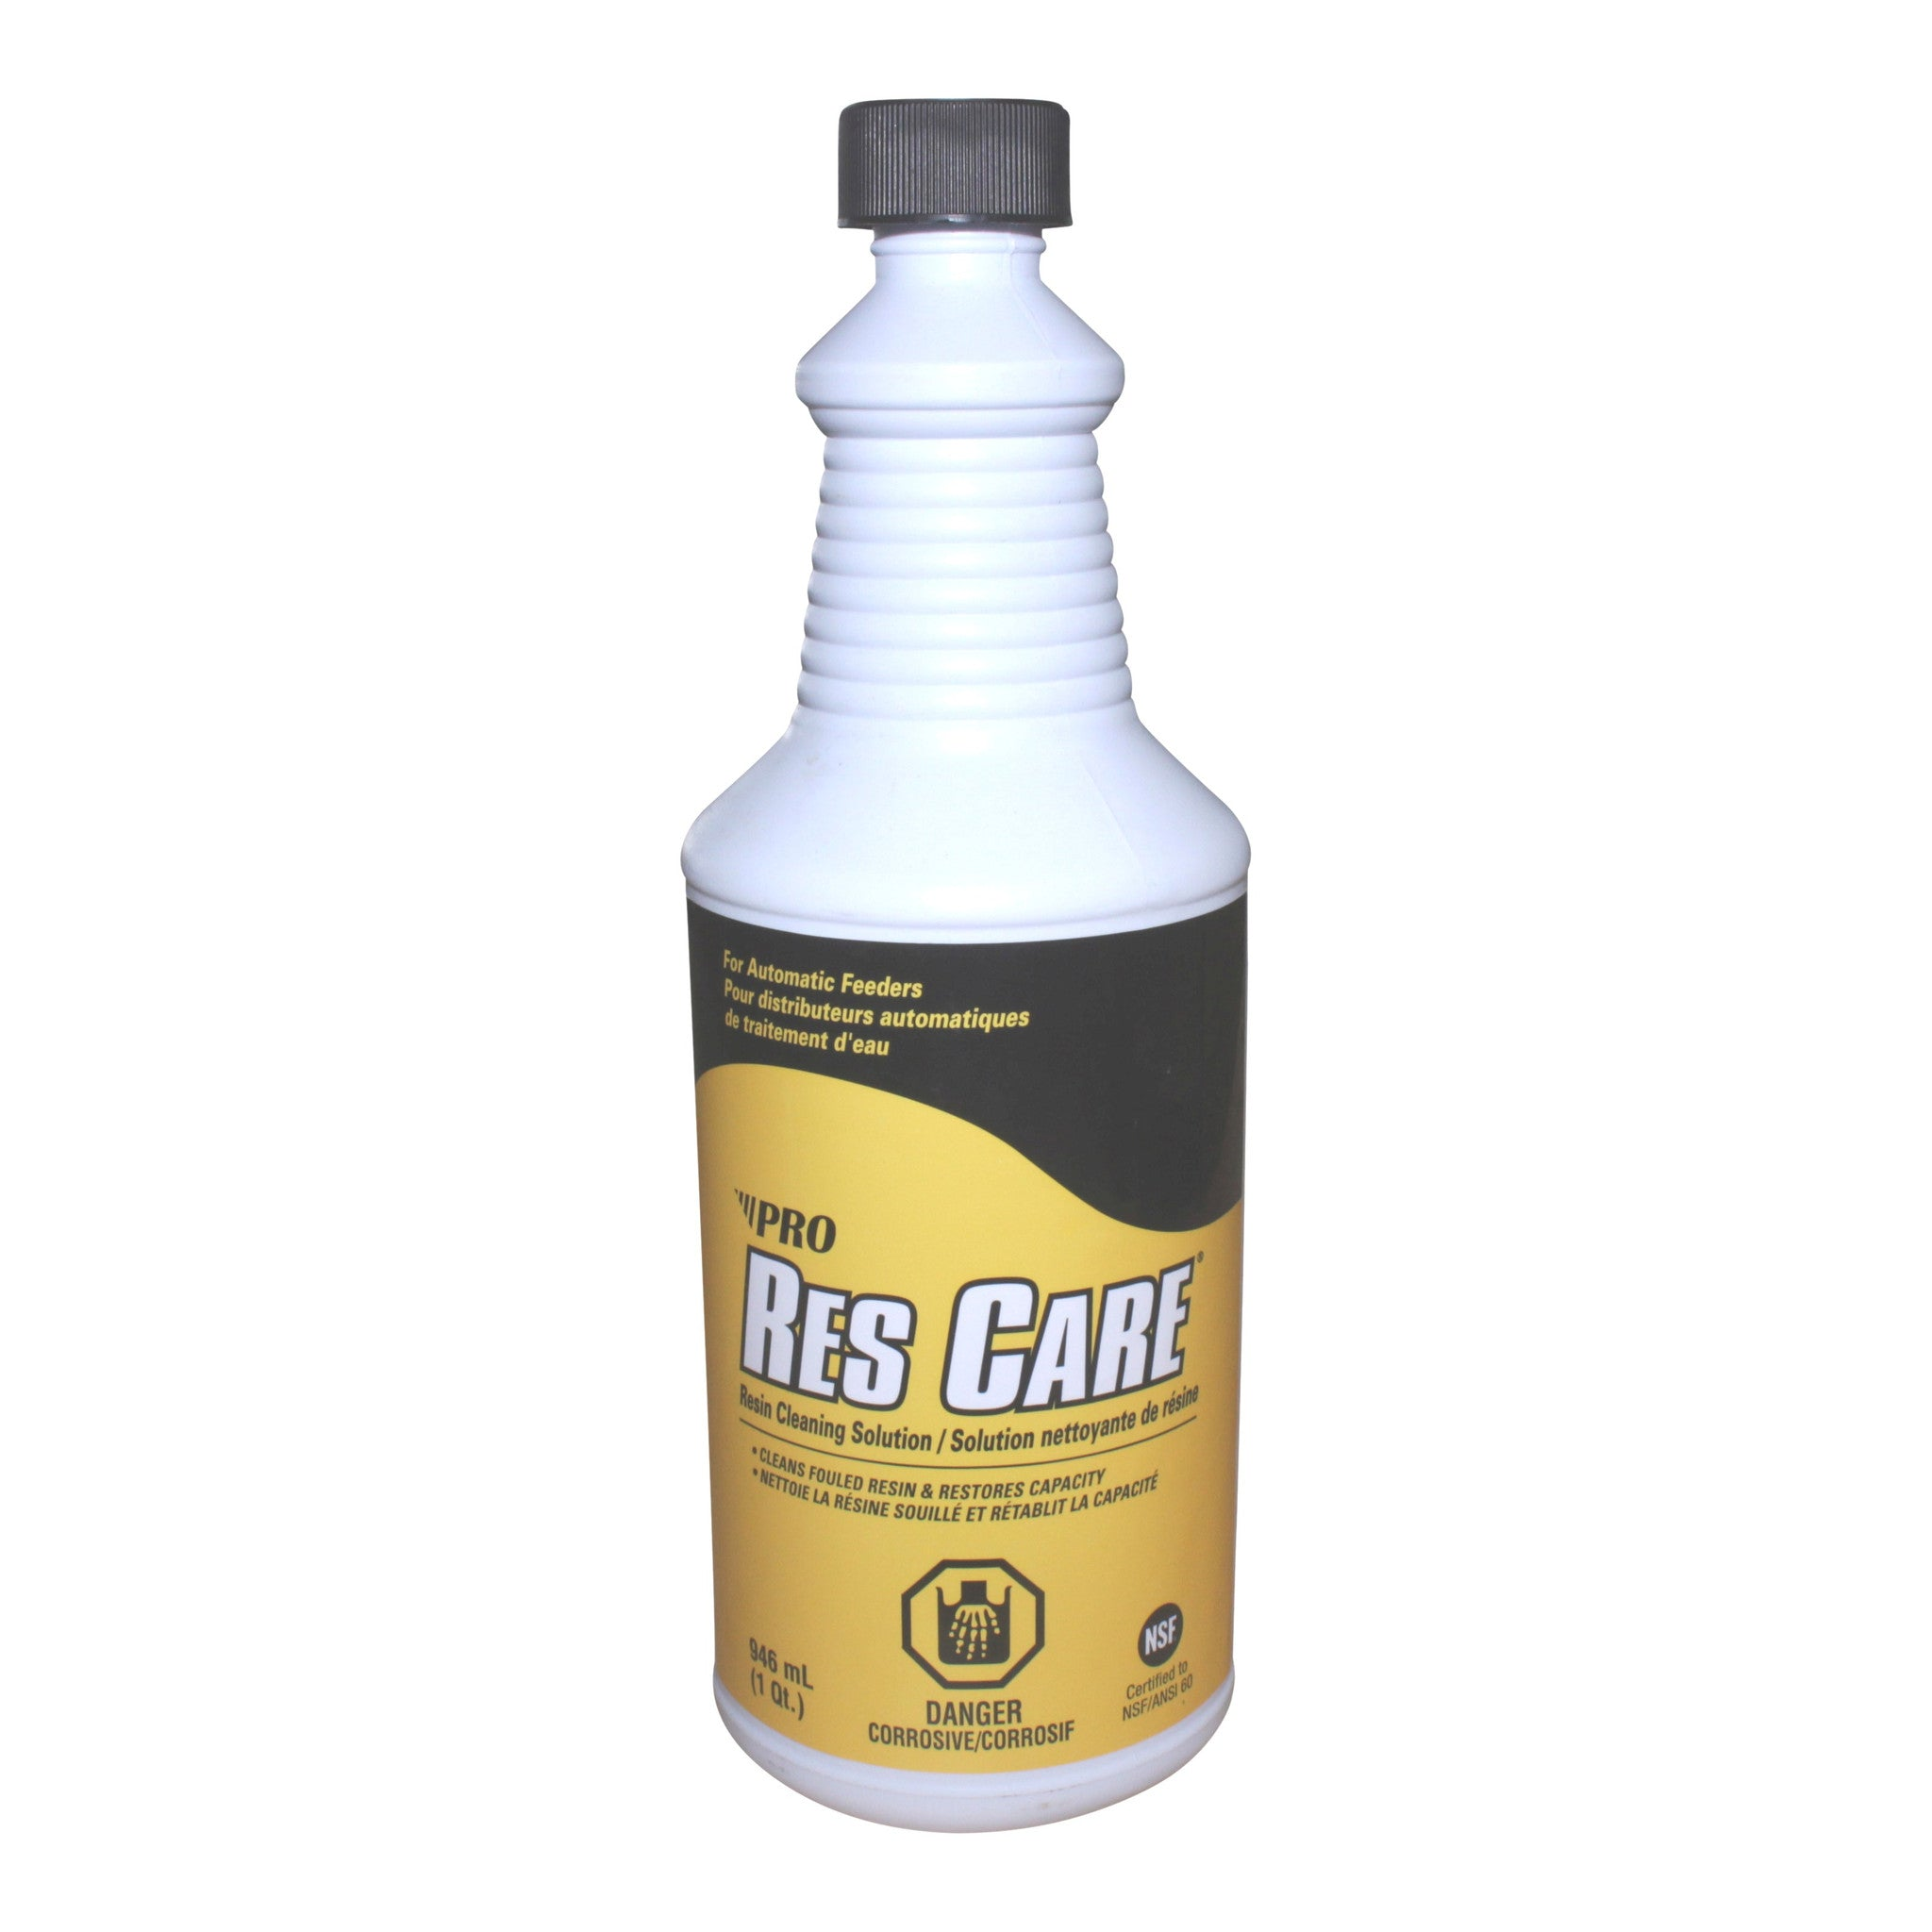 Pro Res Care Water Softener Resin Cleaner